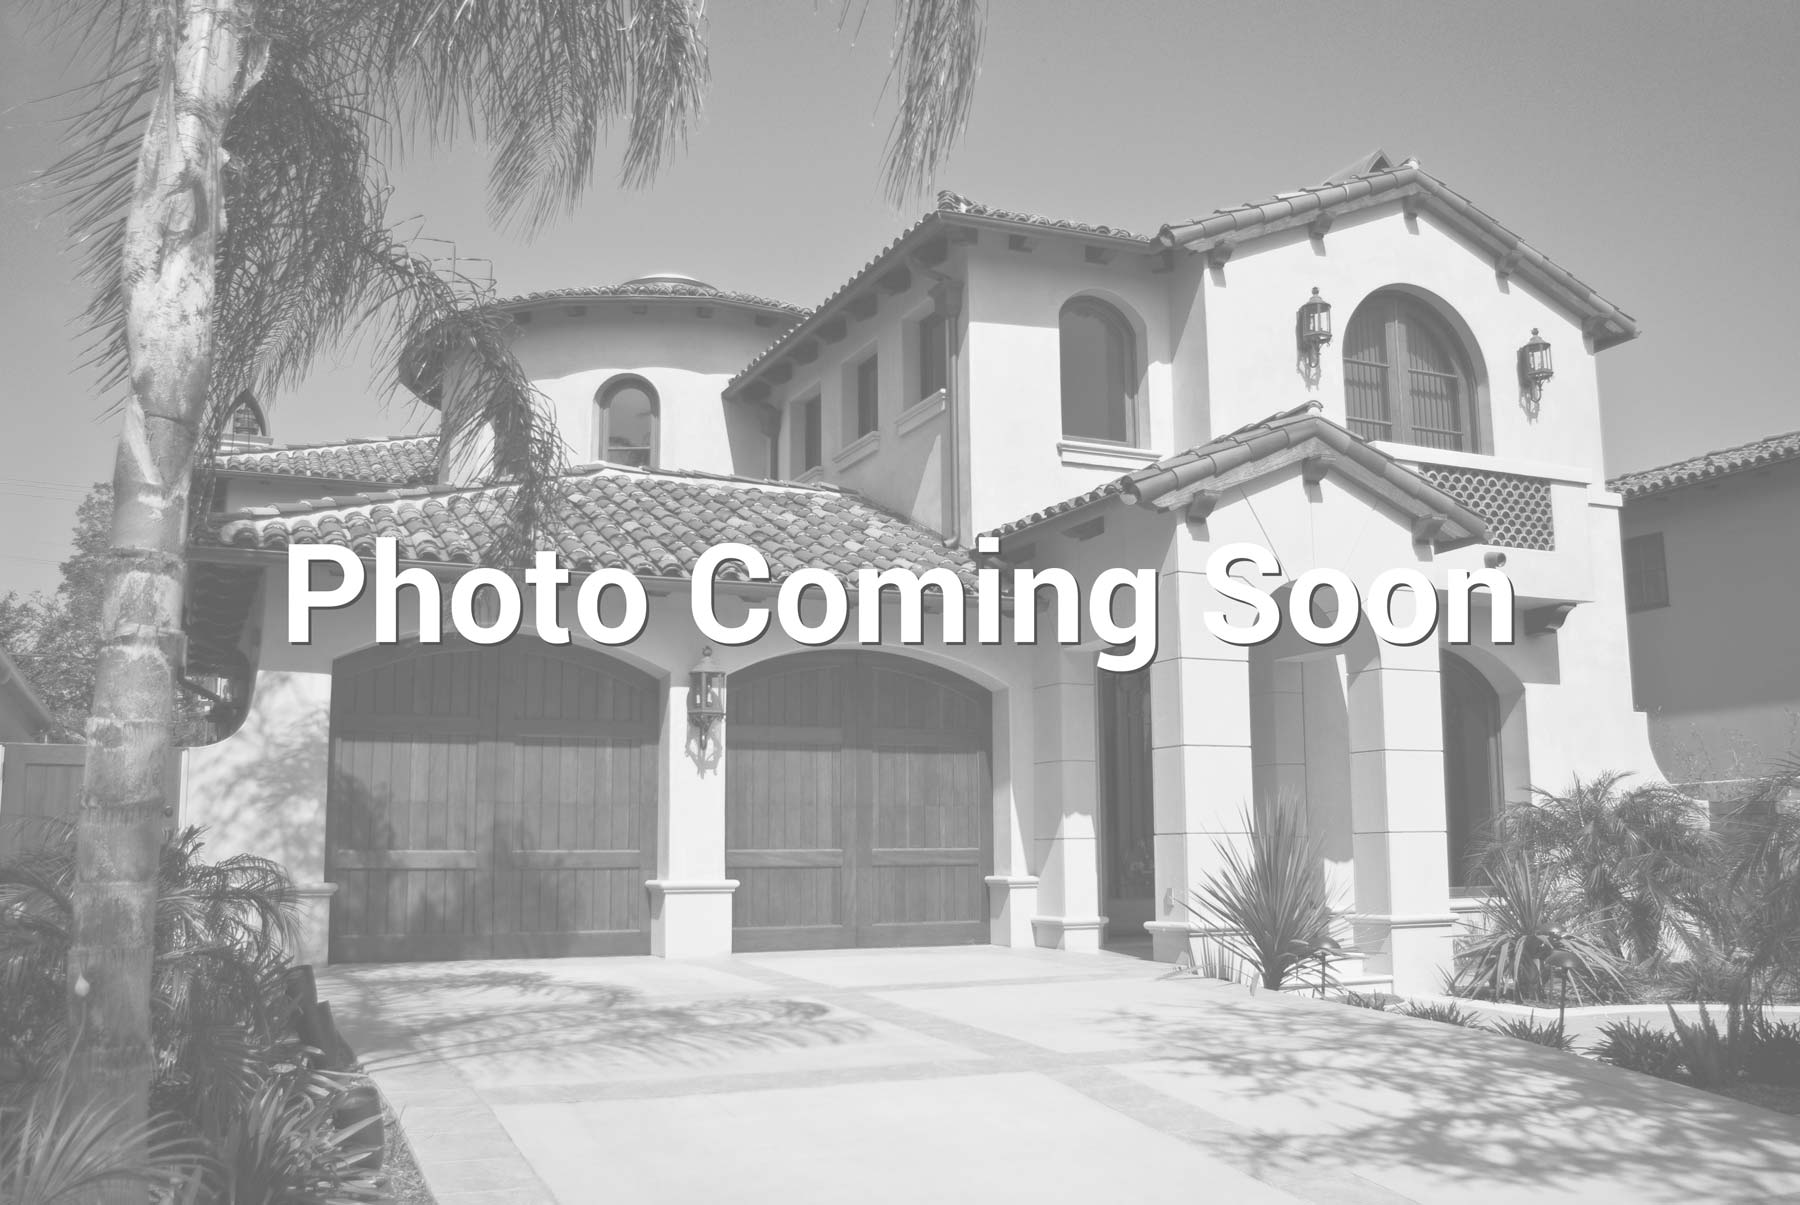 $585,000 - 4Br/3Ba -  for Sale in Lemon Grove, Lemon Grove